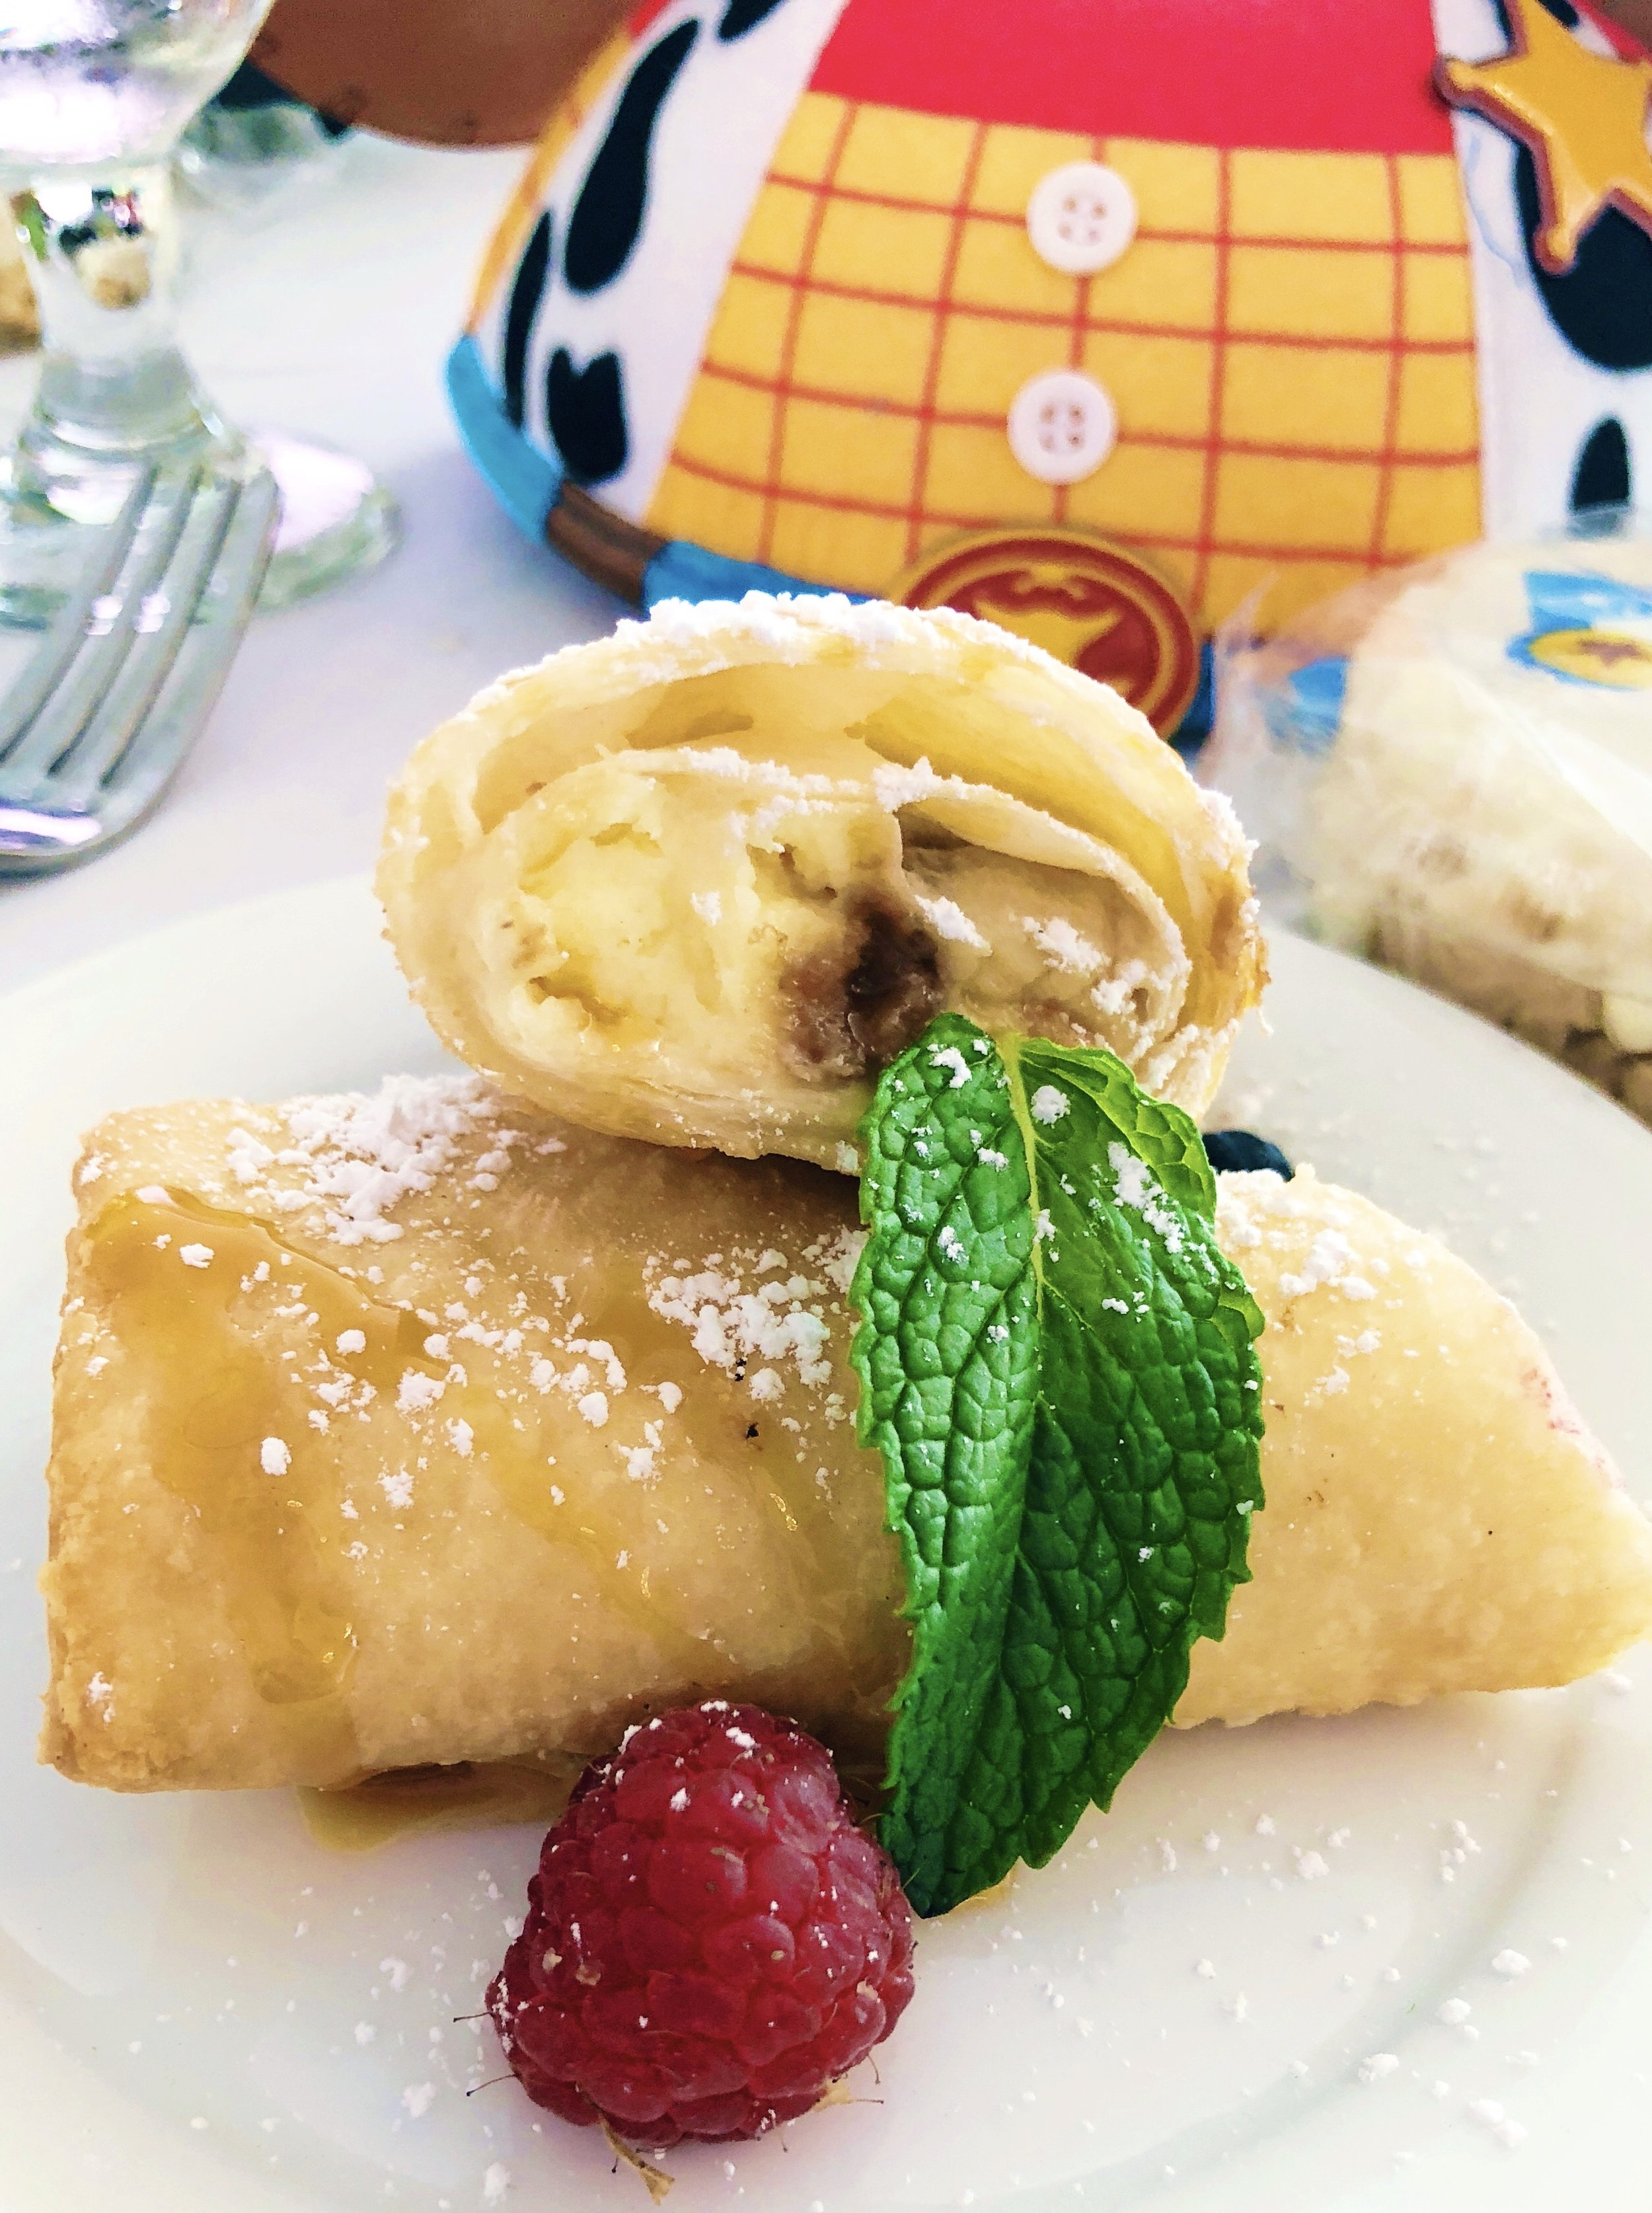 A mouthwatering banana dessert ended the luncheon with an additional sugar rush!